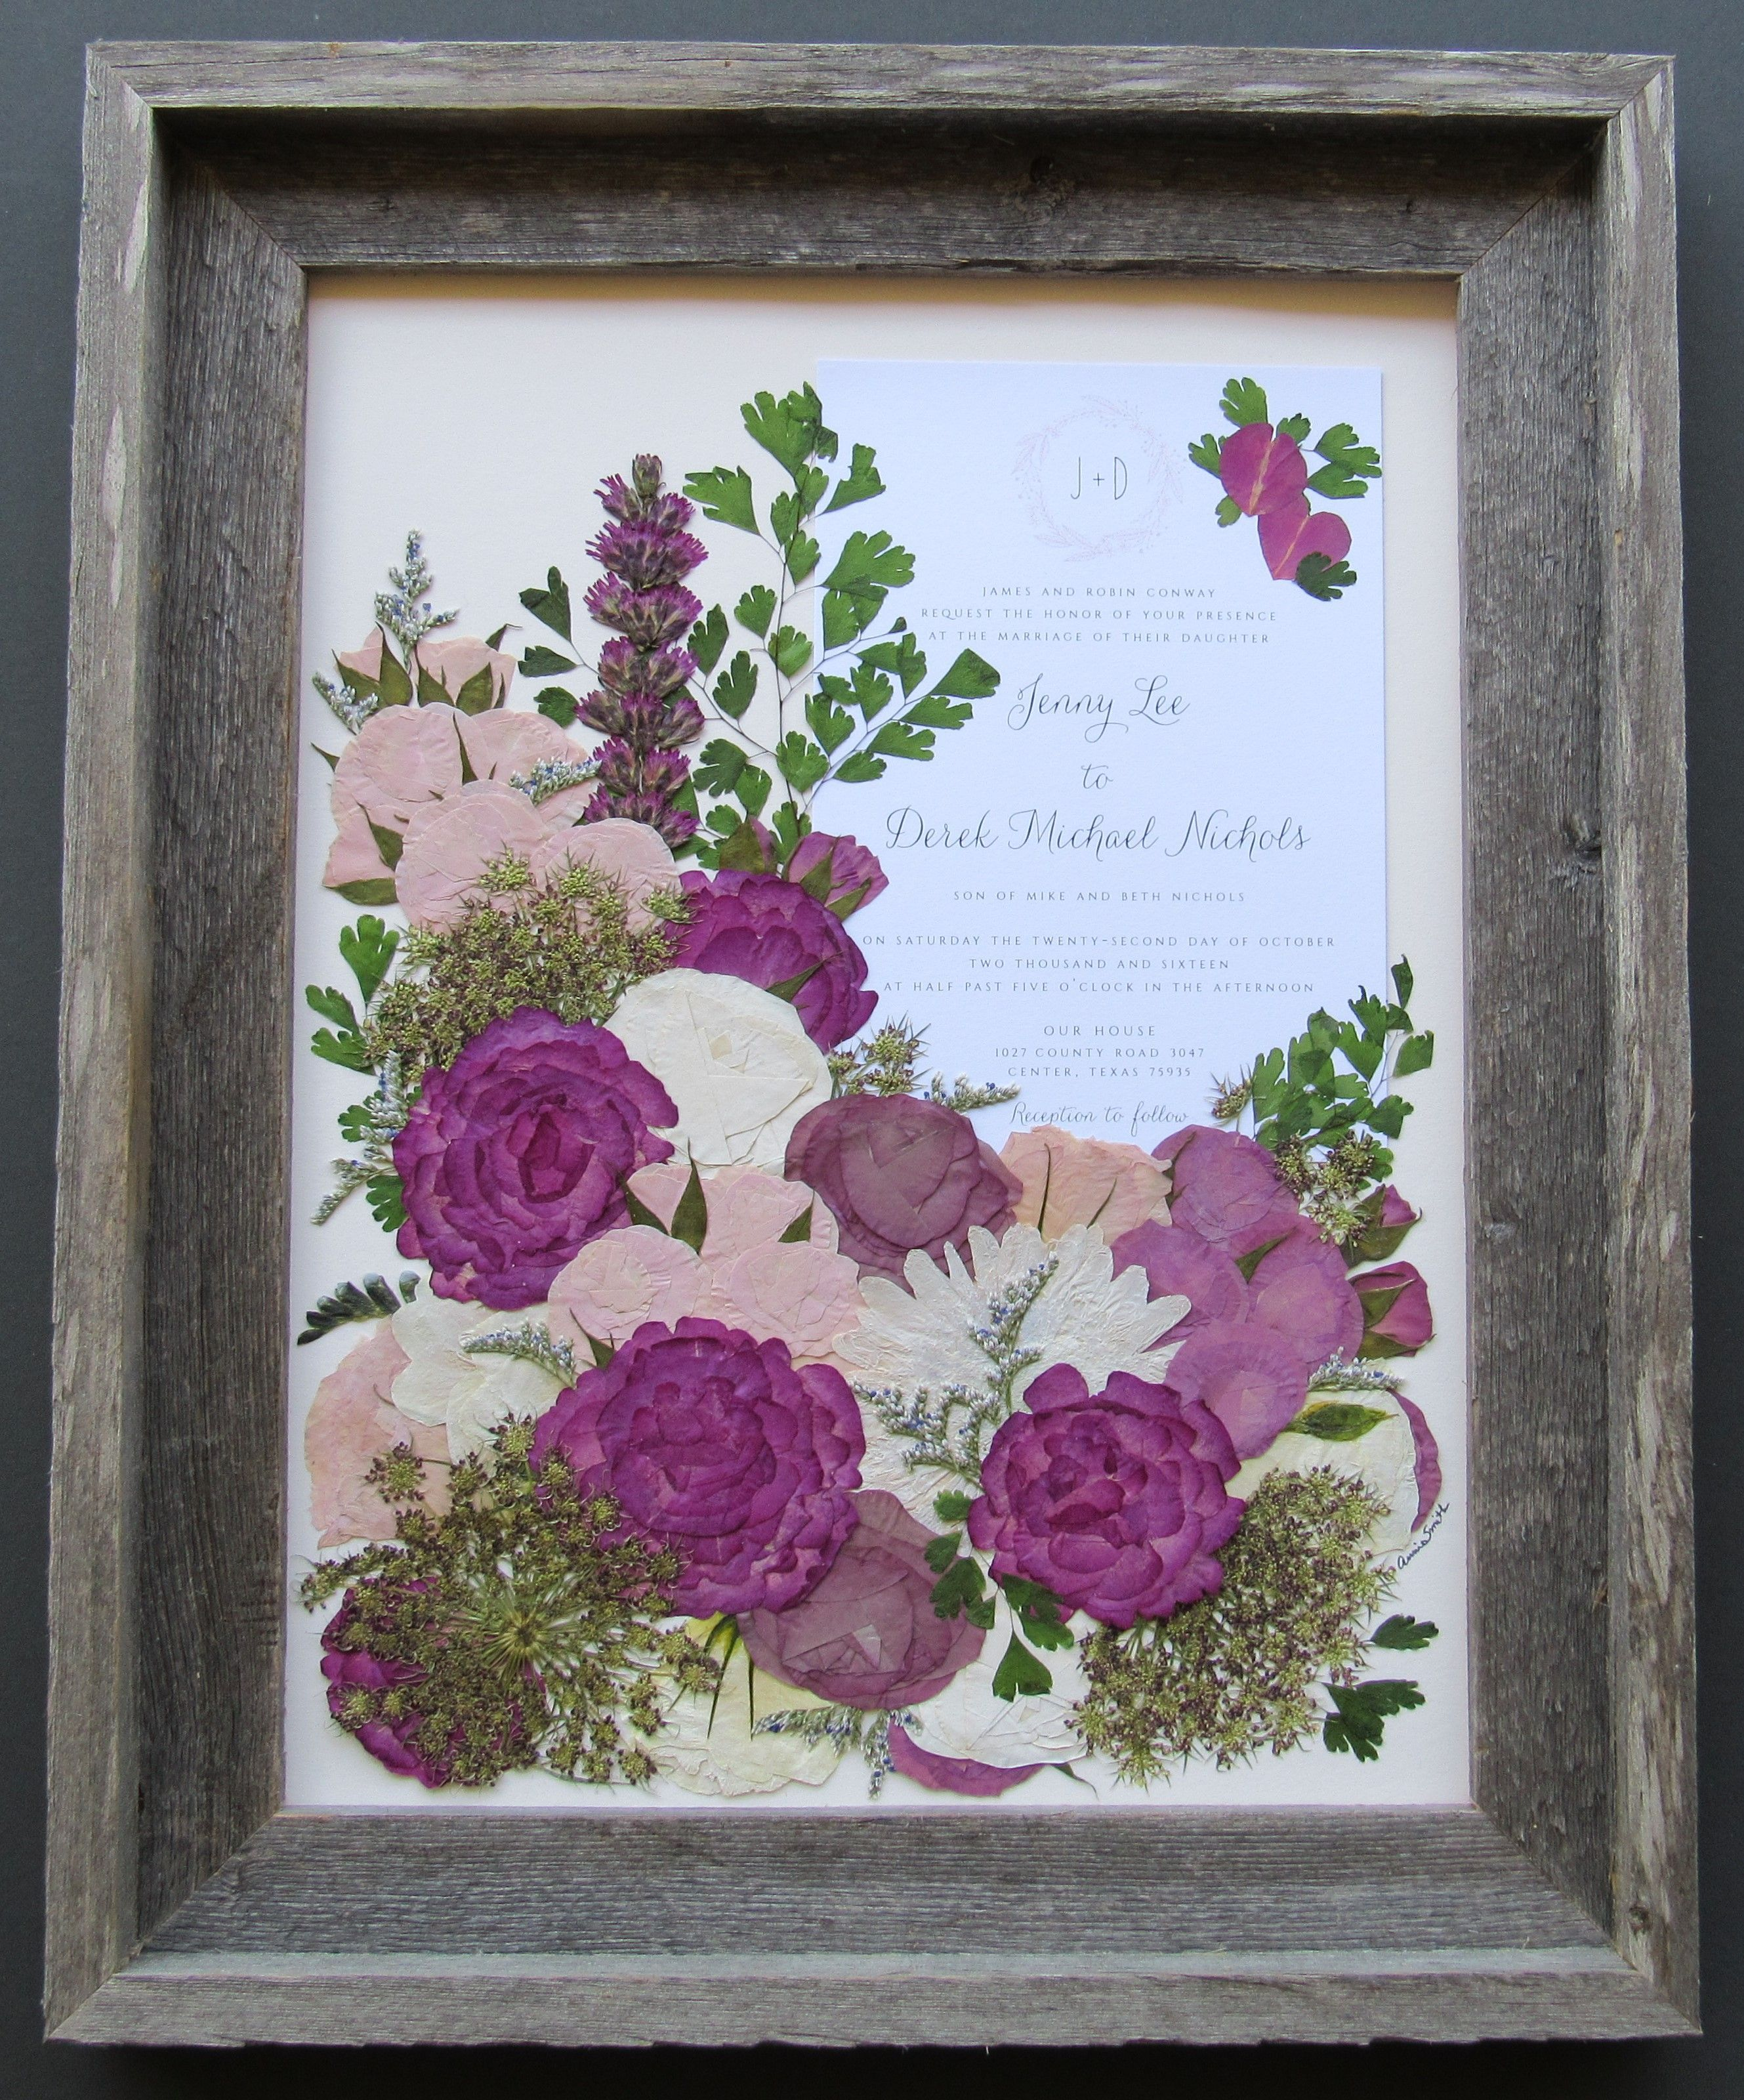 Pressed Garden  Floral Preservation  Preserved Wedding Bouquets is part of Wedding flowers bridal bouquets - Pressed Garden preserves wedding and special event bouquets, turning your memories into priceless pieces of heirloom art